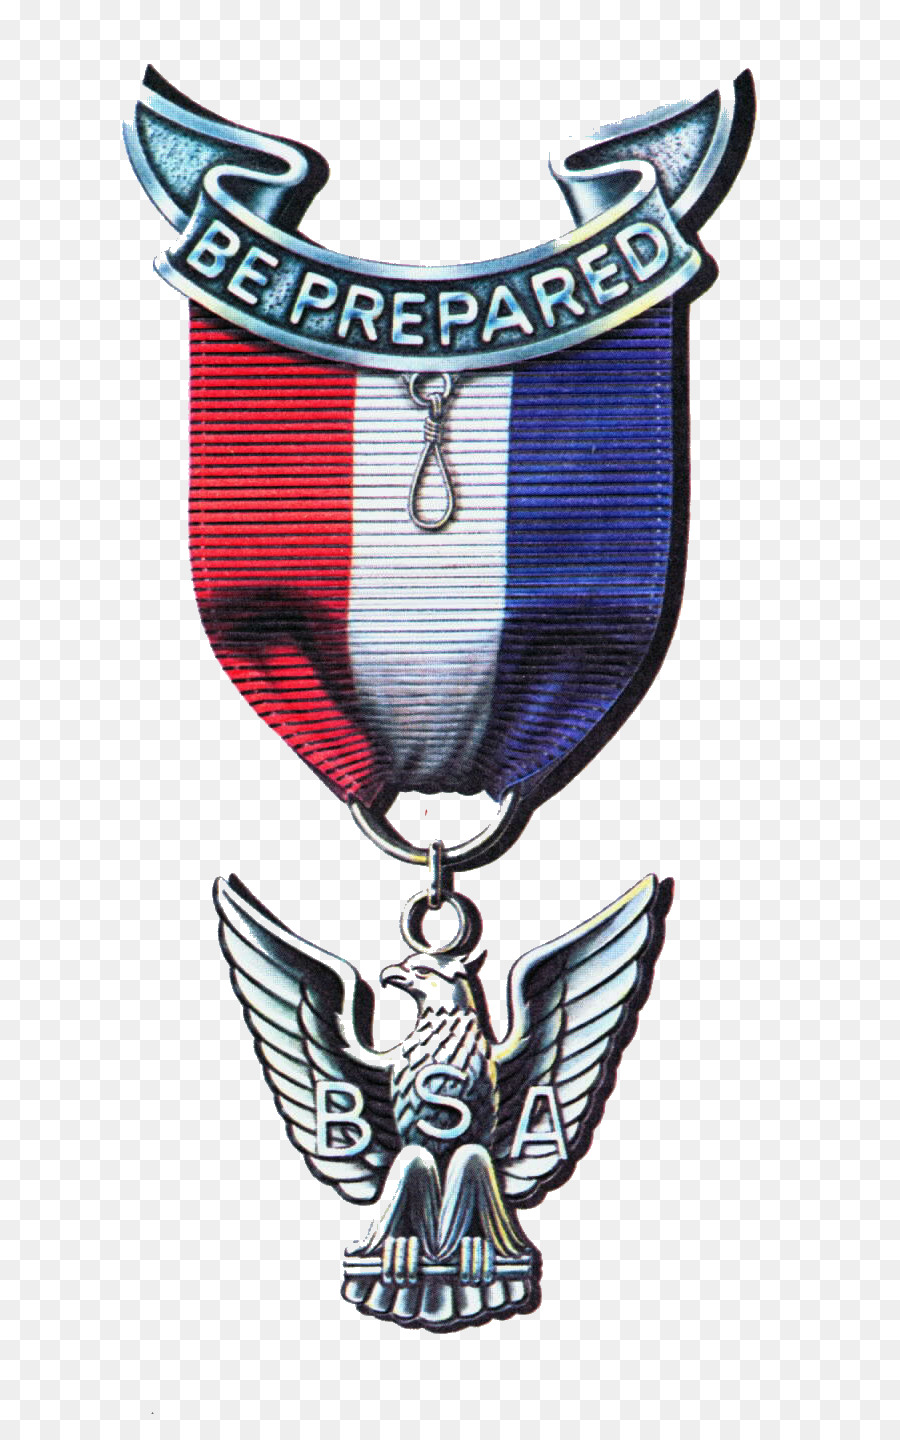 eagle scout court of honor emblem half birthday cake topper edible image clipart Eagle Scout Court of Honor Boy Scouts of America